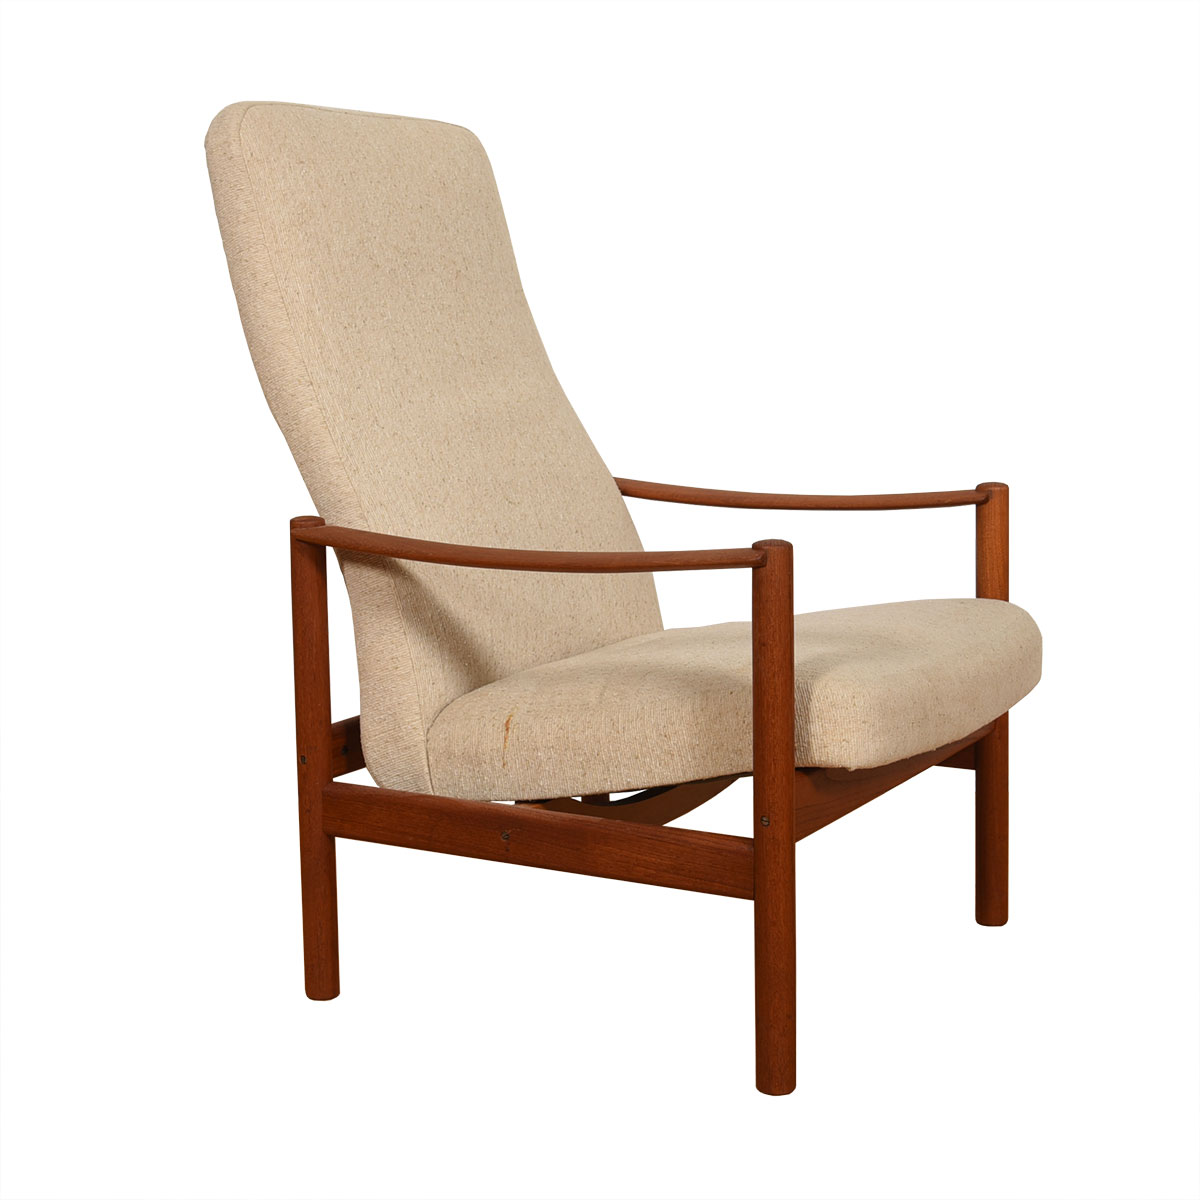 Reclining Norwegian Teak Lounge Chair